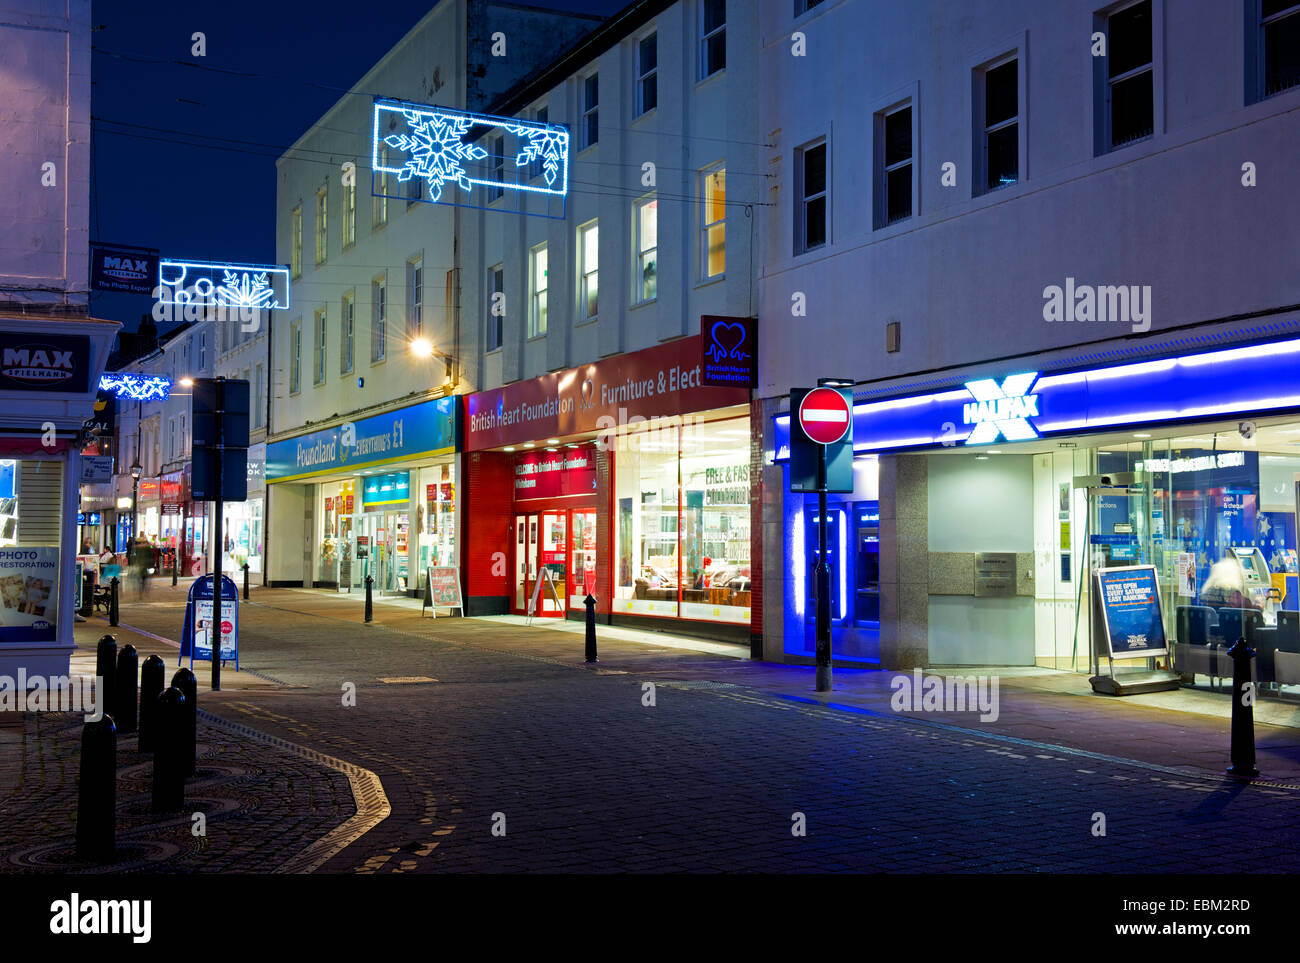 King Street in Whitehaven, West Cumbria, England UK - Stock Image